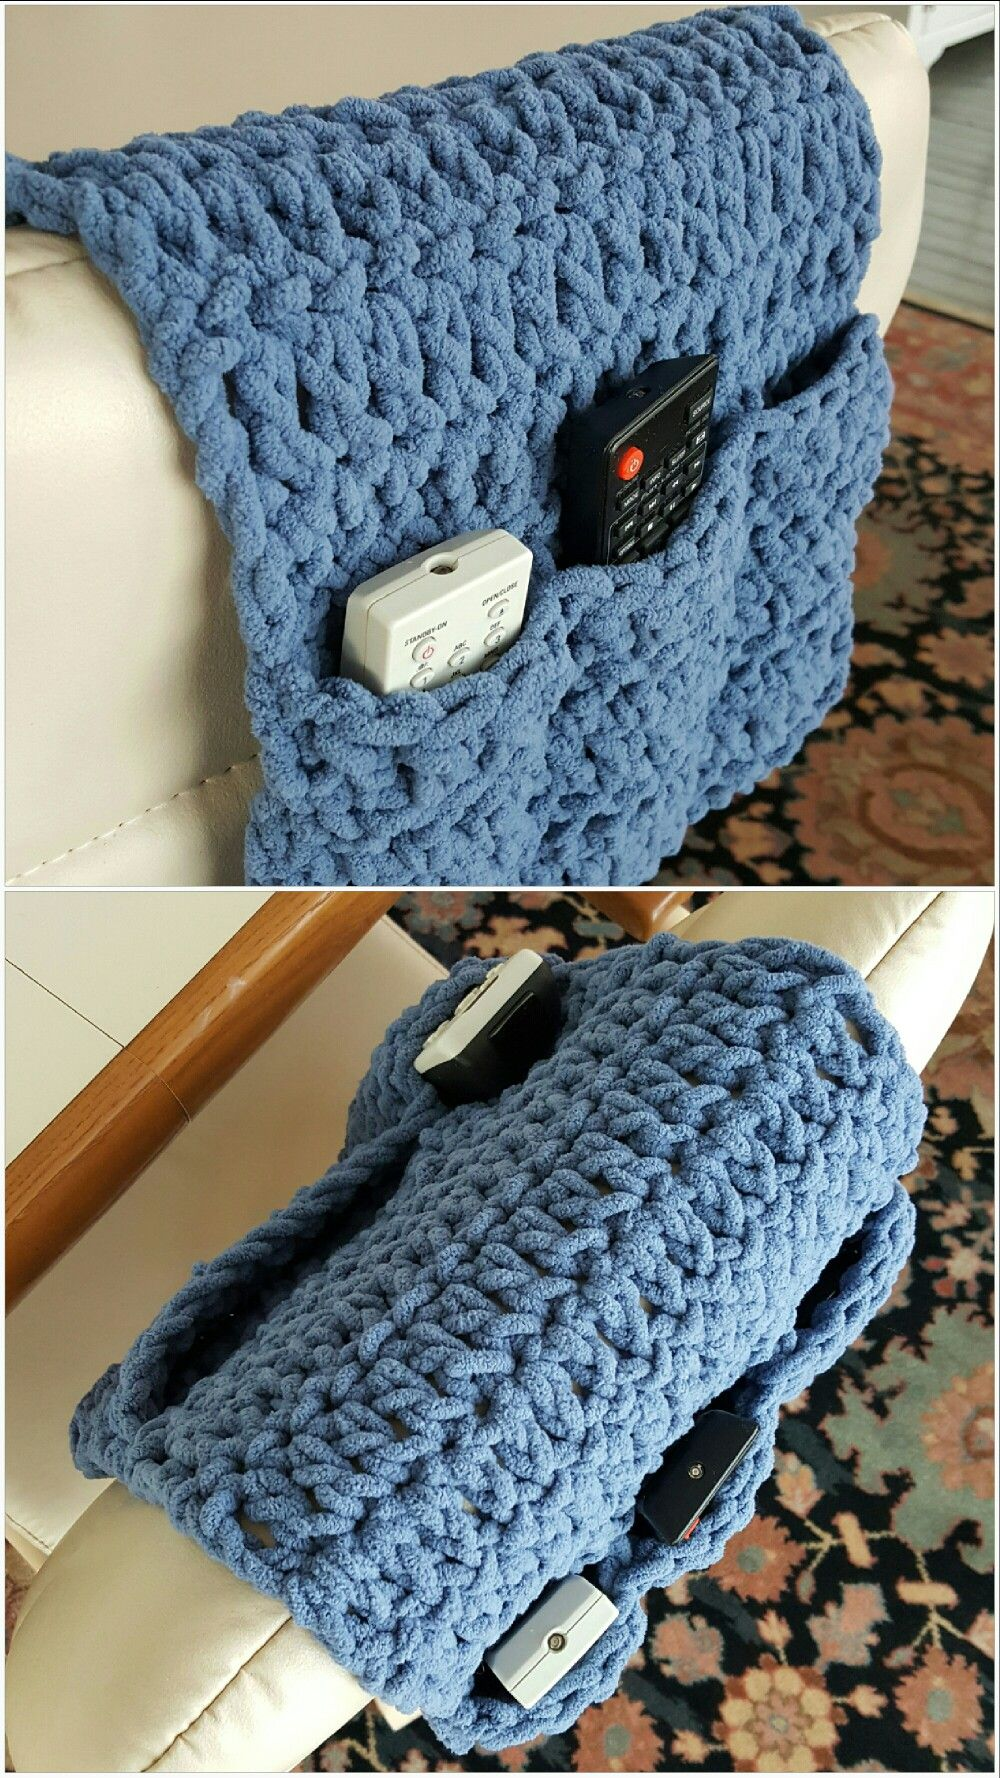 I crocheted a remote control organizer for Hubs using dc & Bernat ...